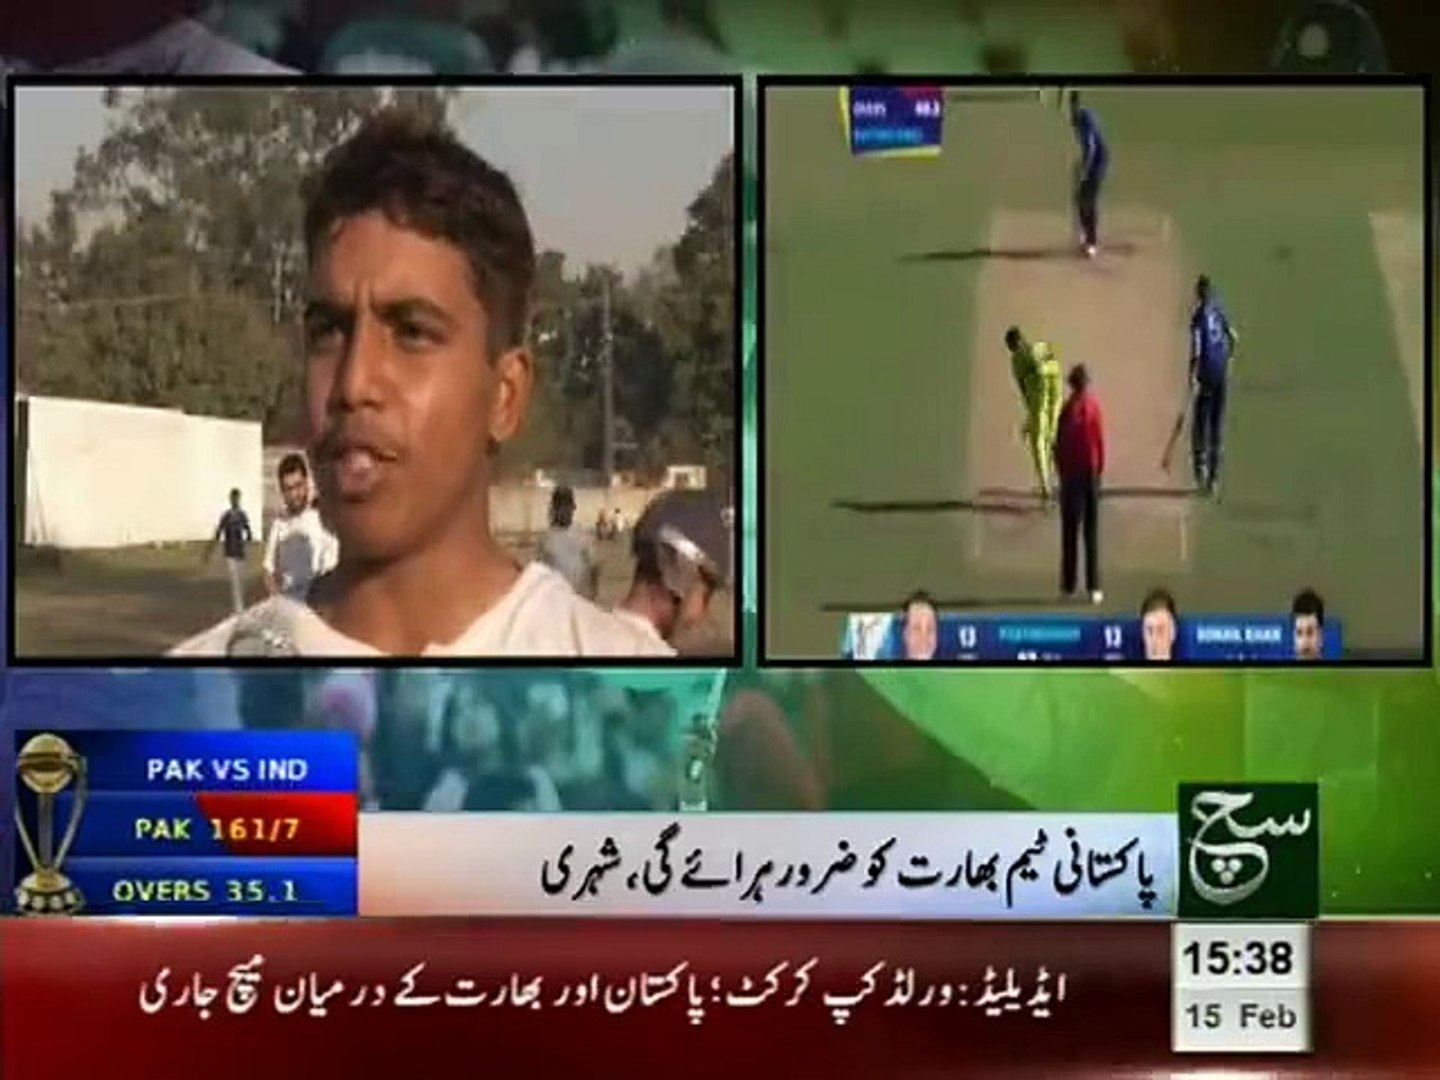 D.I.Khan Pak India Cricket News